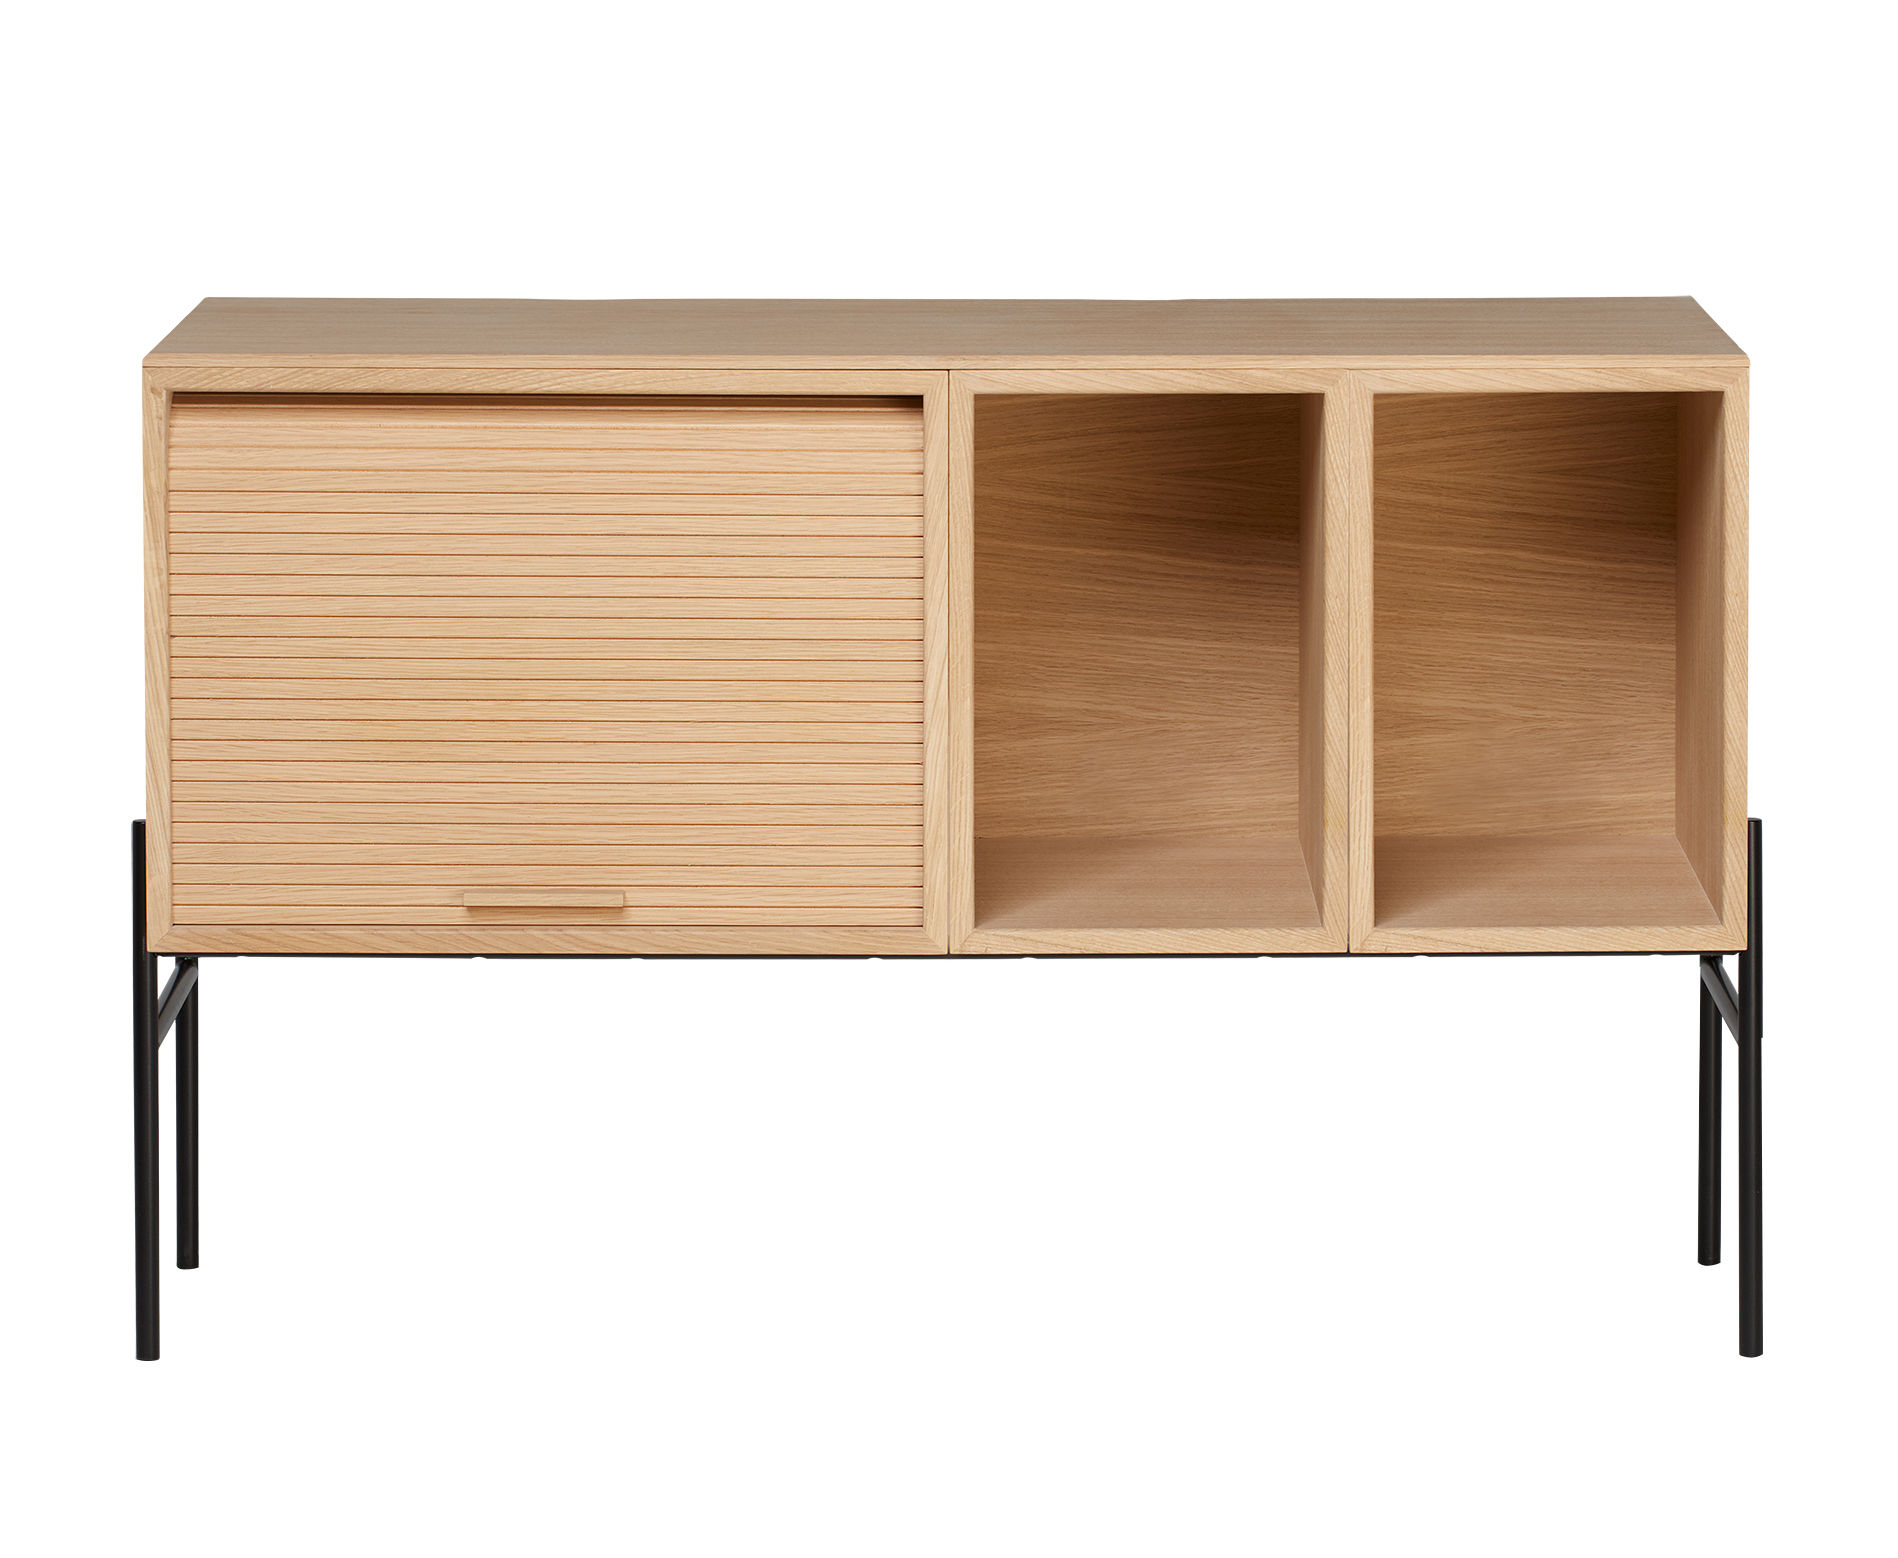 Furniture - Dressers & Storage Units - Hifive Television table - / TV table - L 100 x H 65 cm by Northern  - Light oak - Lacquered steel, Oiled oak plywood